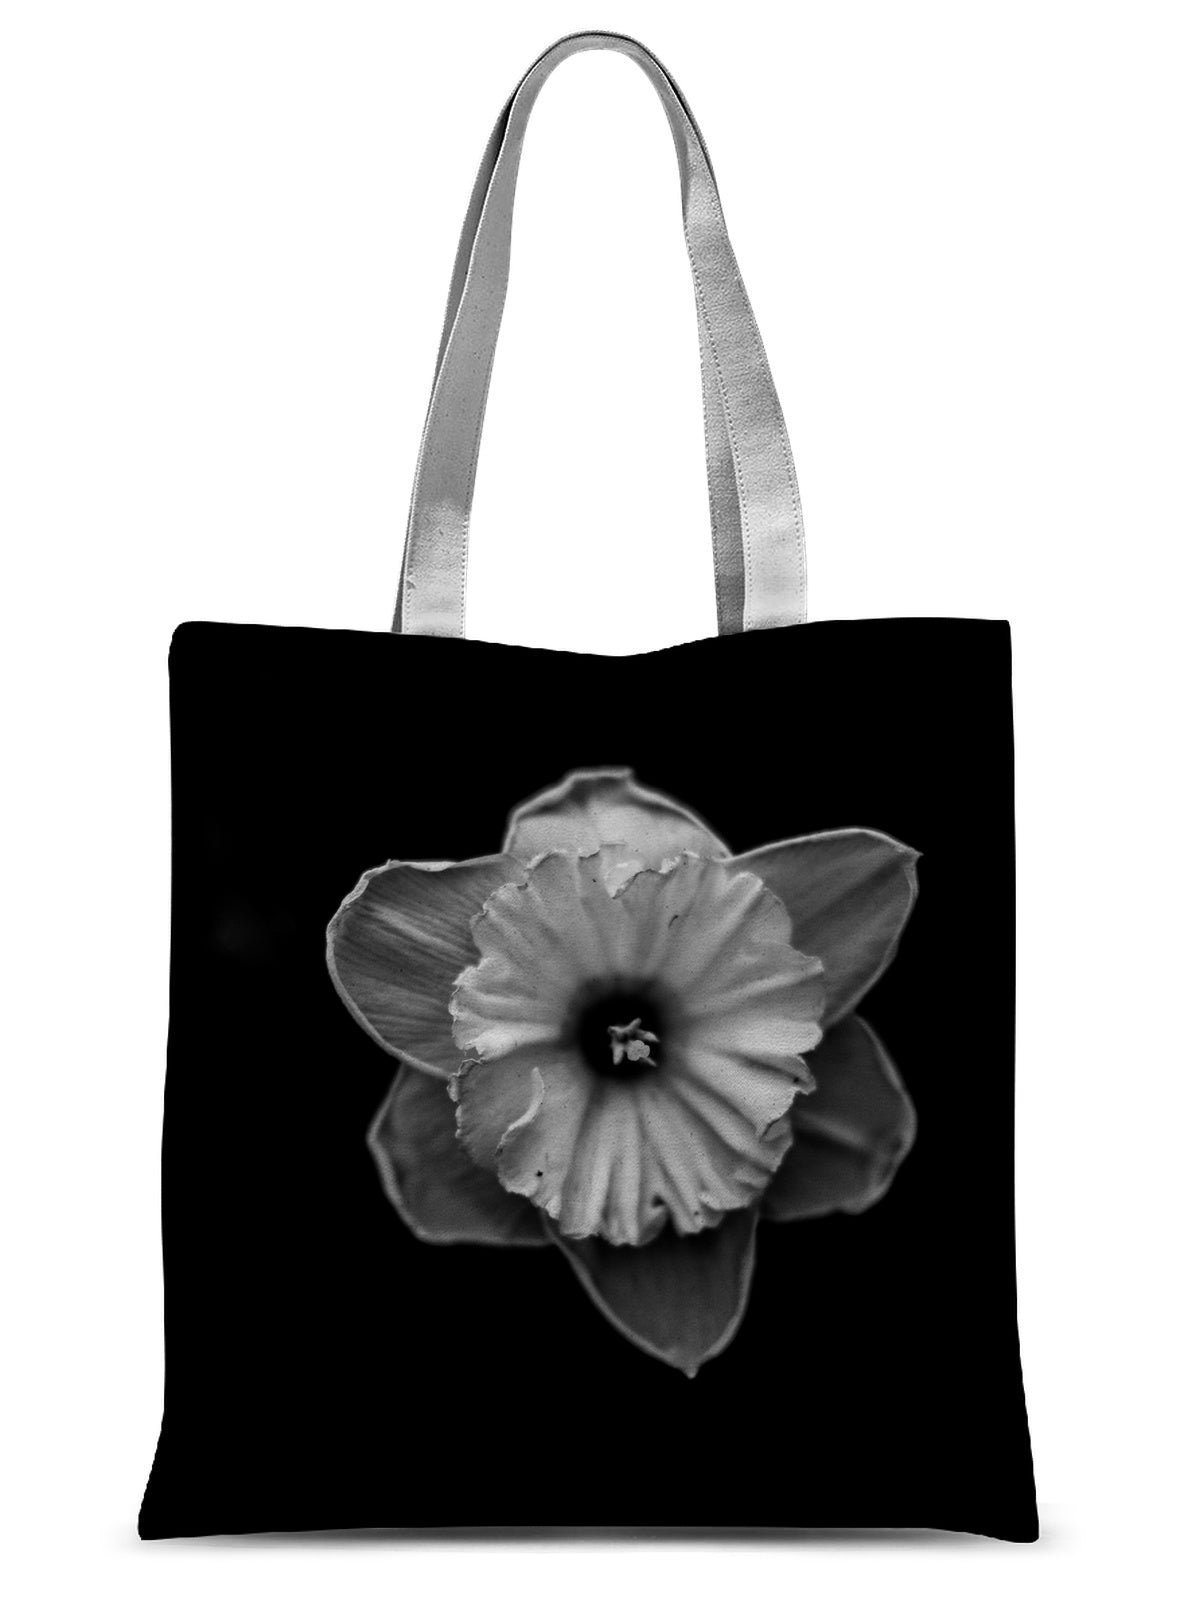 FSMONO-07 Sublimation Tote Bag